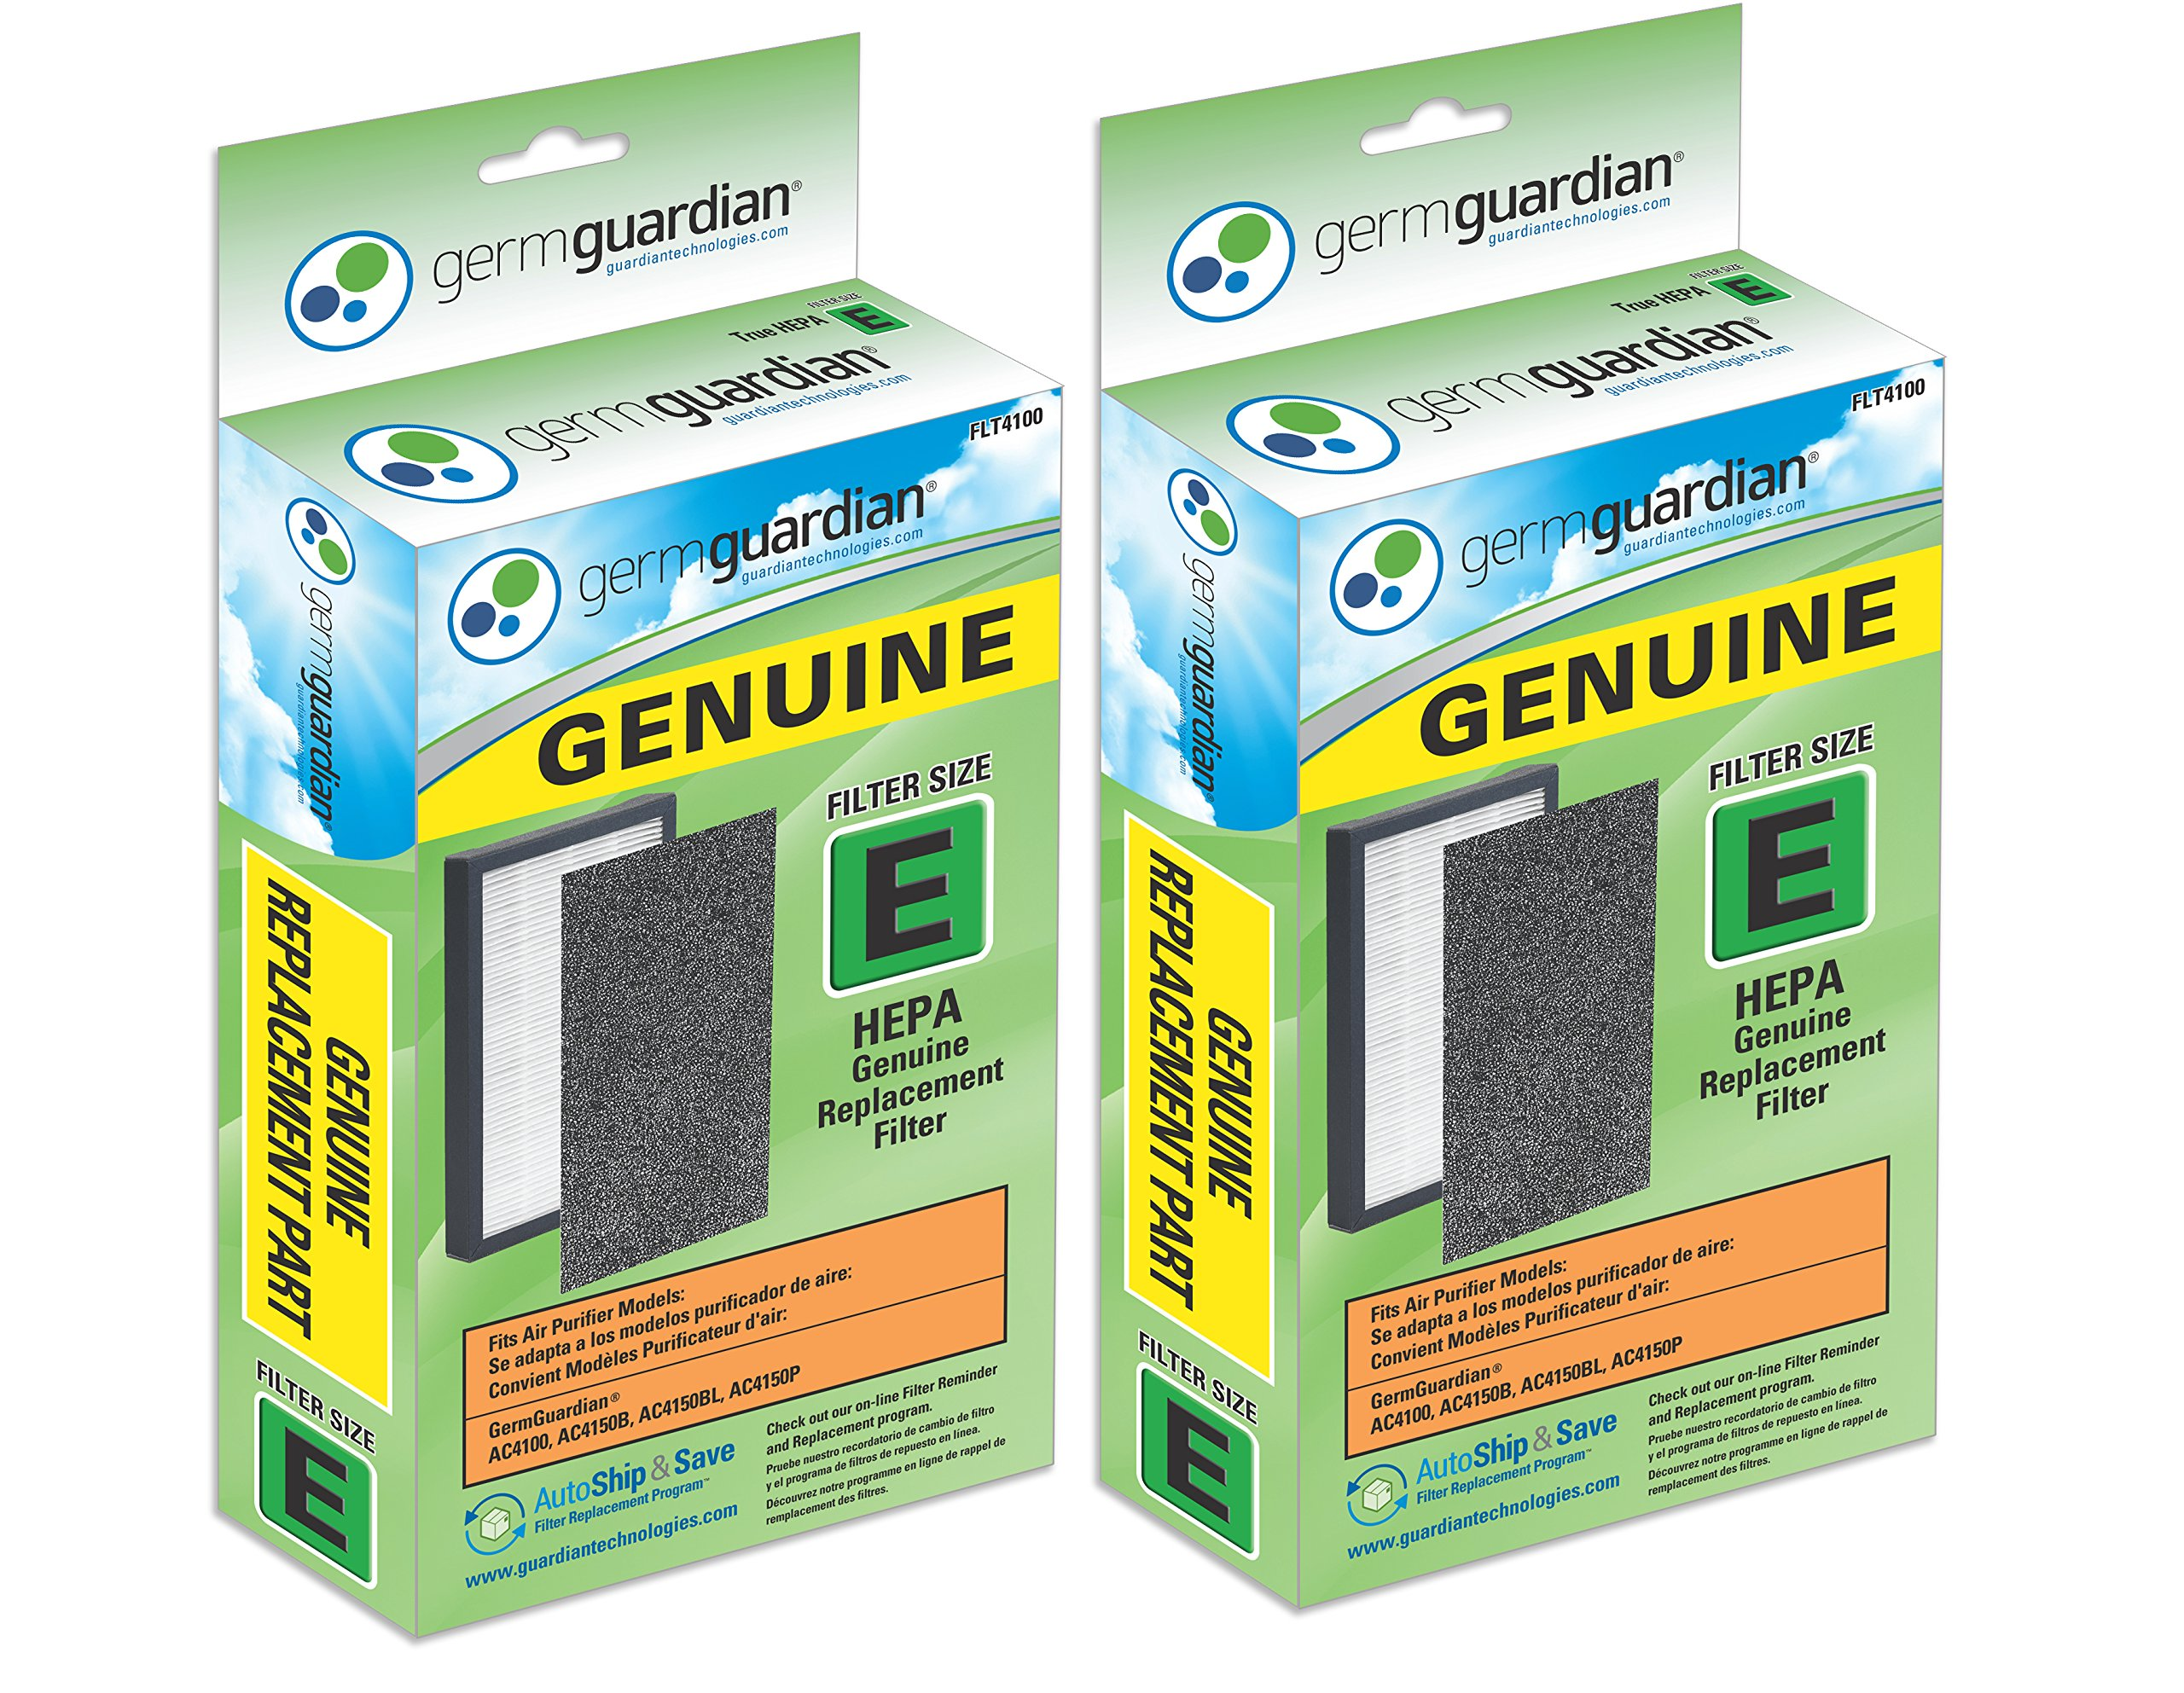 Germ Guardian FLT4100 GENUINE HEPA Replacement Filter E for AC4100/AC4150 GermGuardian Air Purifiers (2)